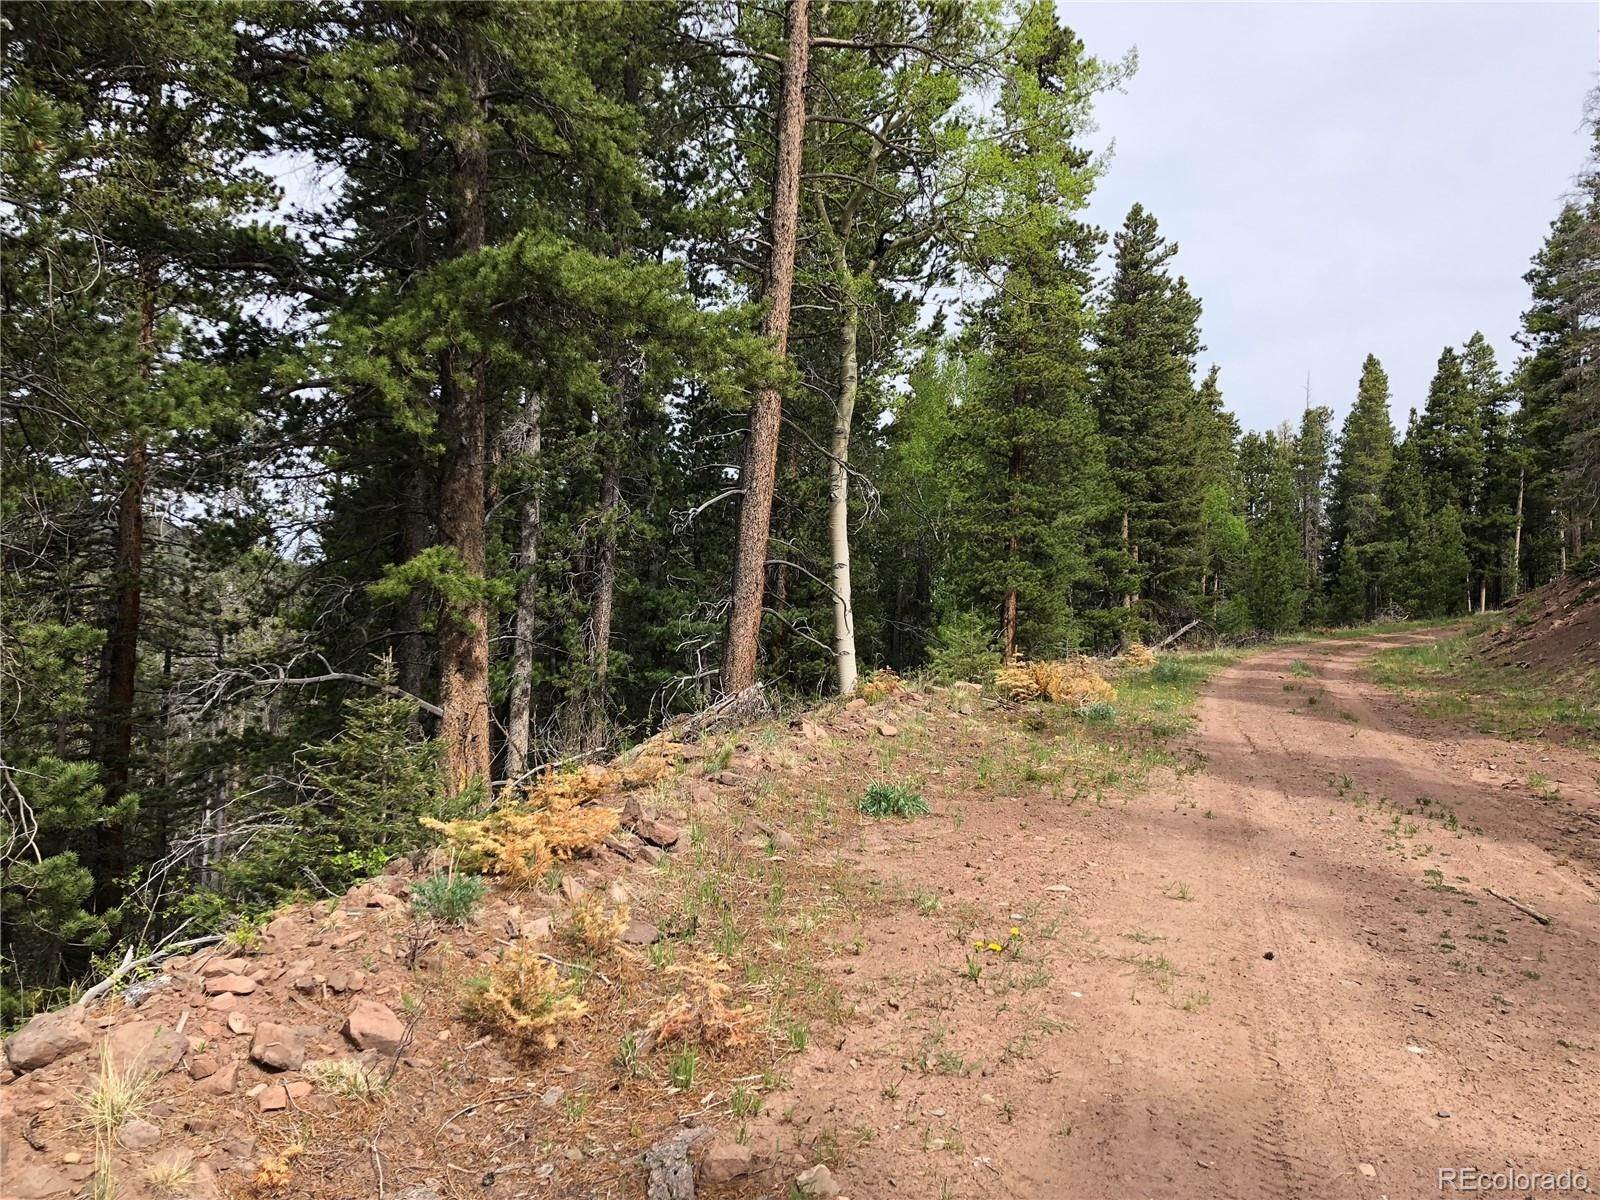 Terrain à 3328 Vaughn Lane Fort Garland, Colorado 81133 États-Unis